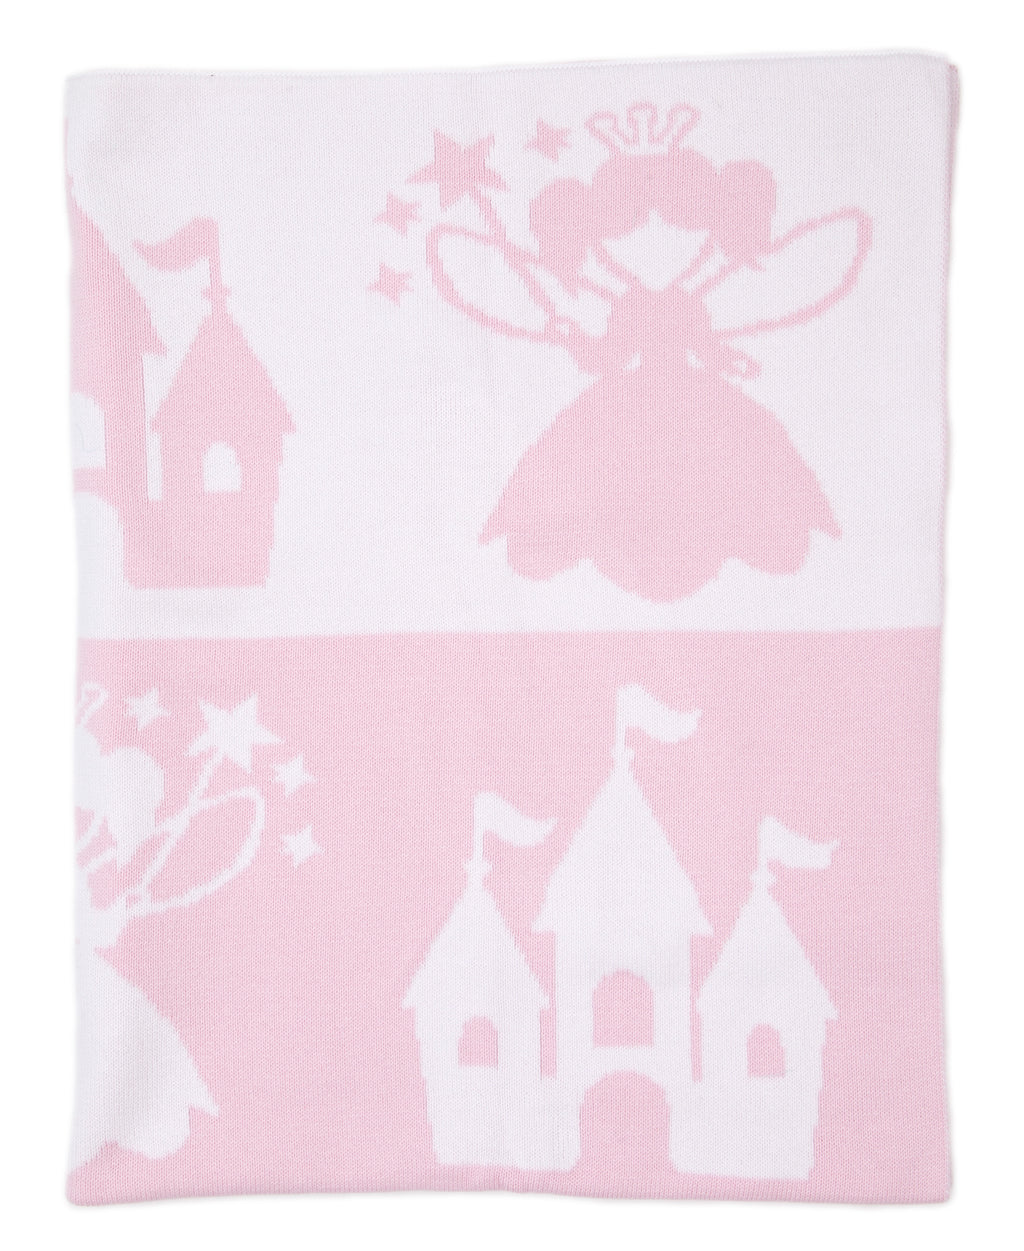 Fairy Princess Novelty Blanket